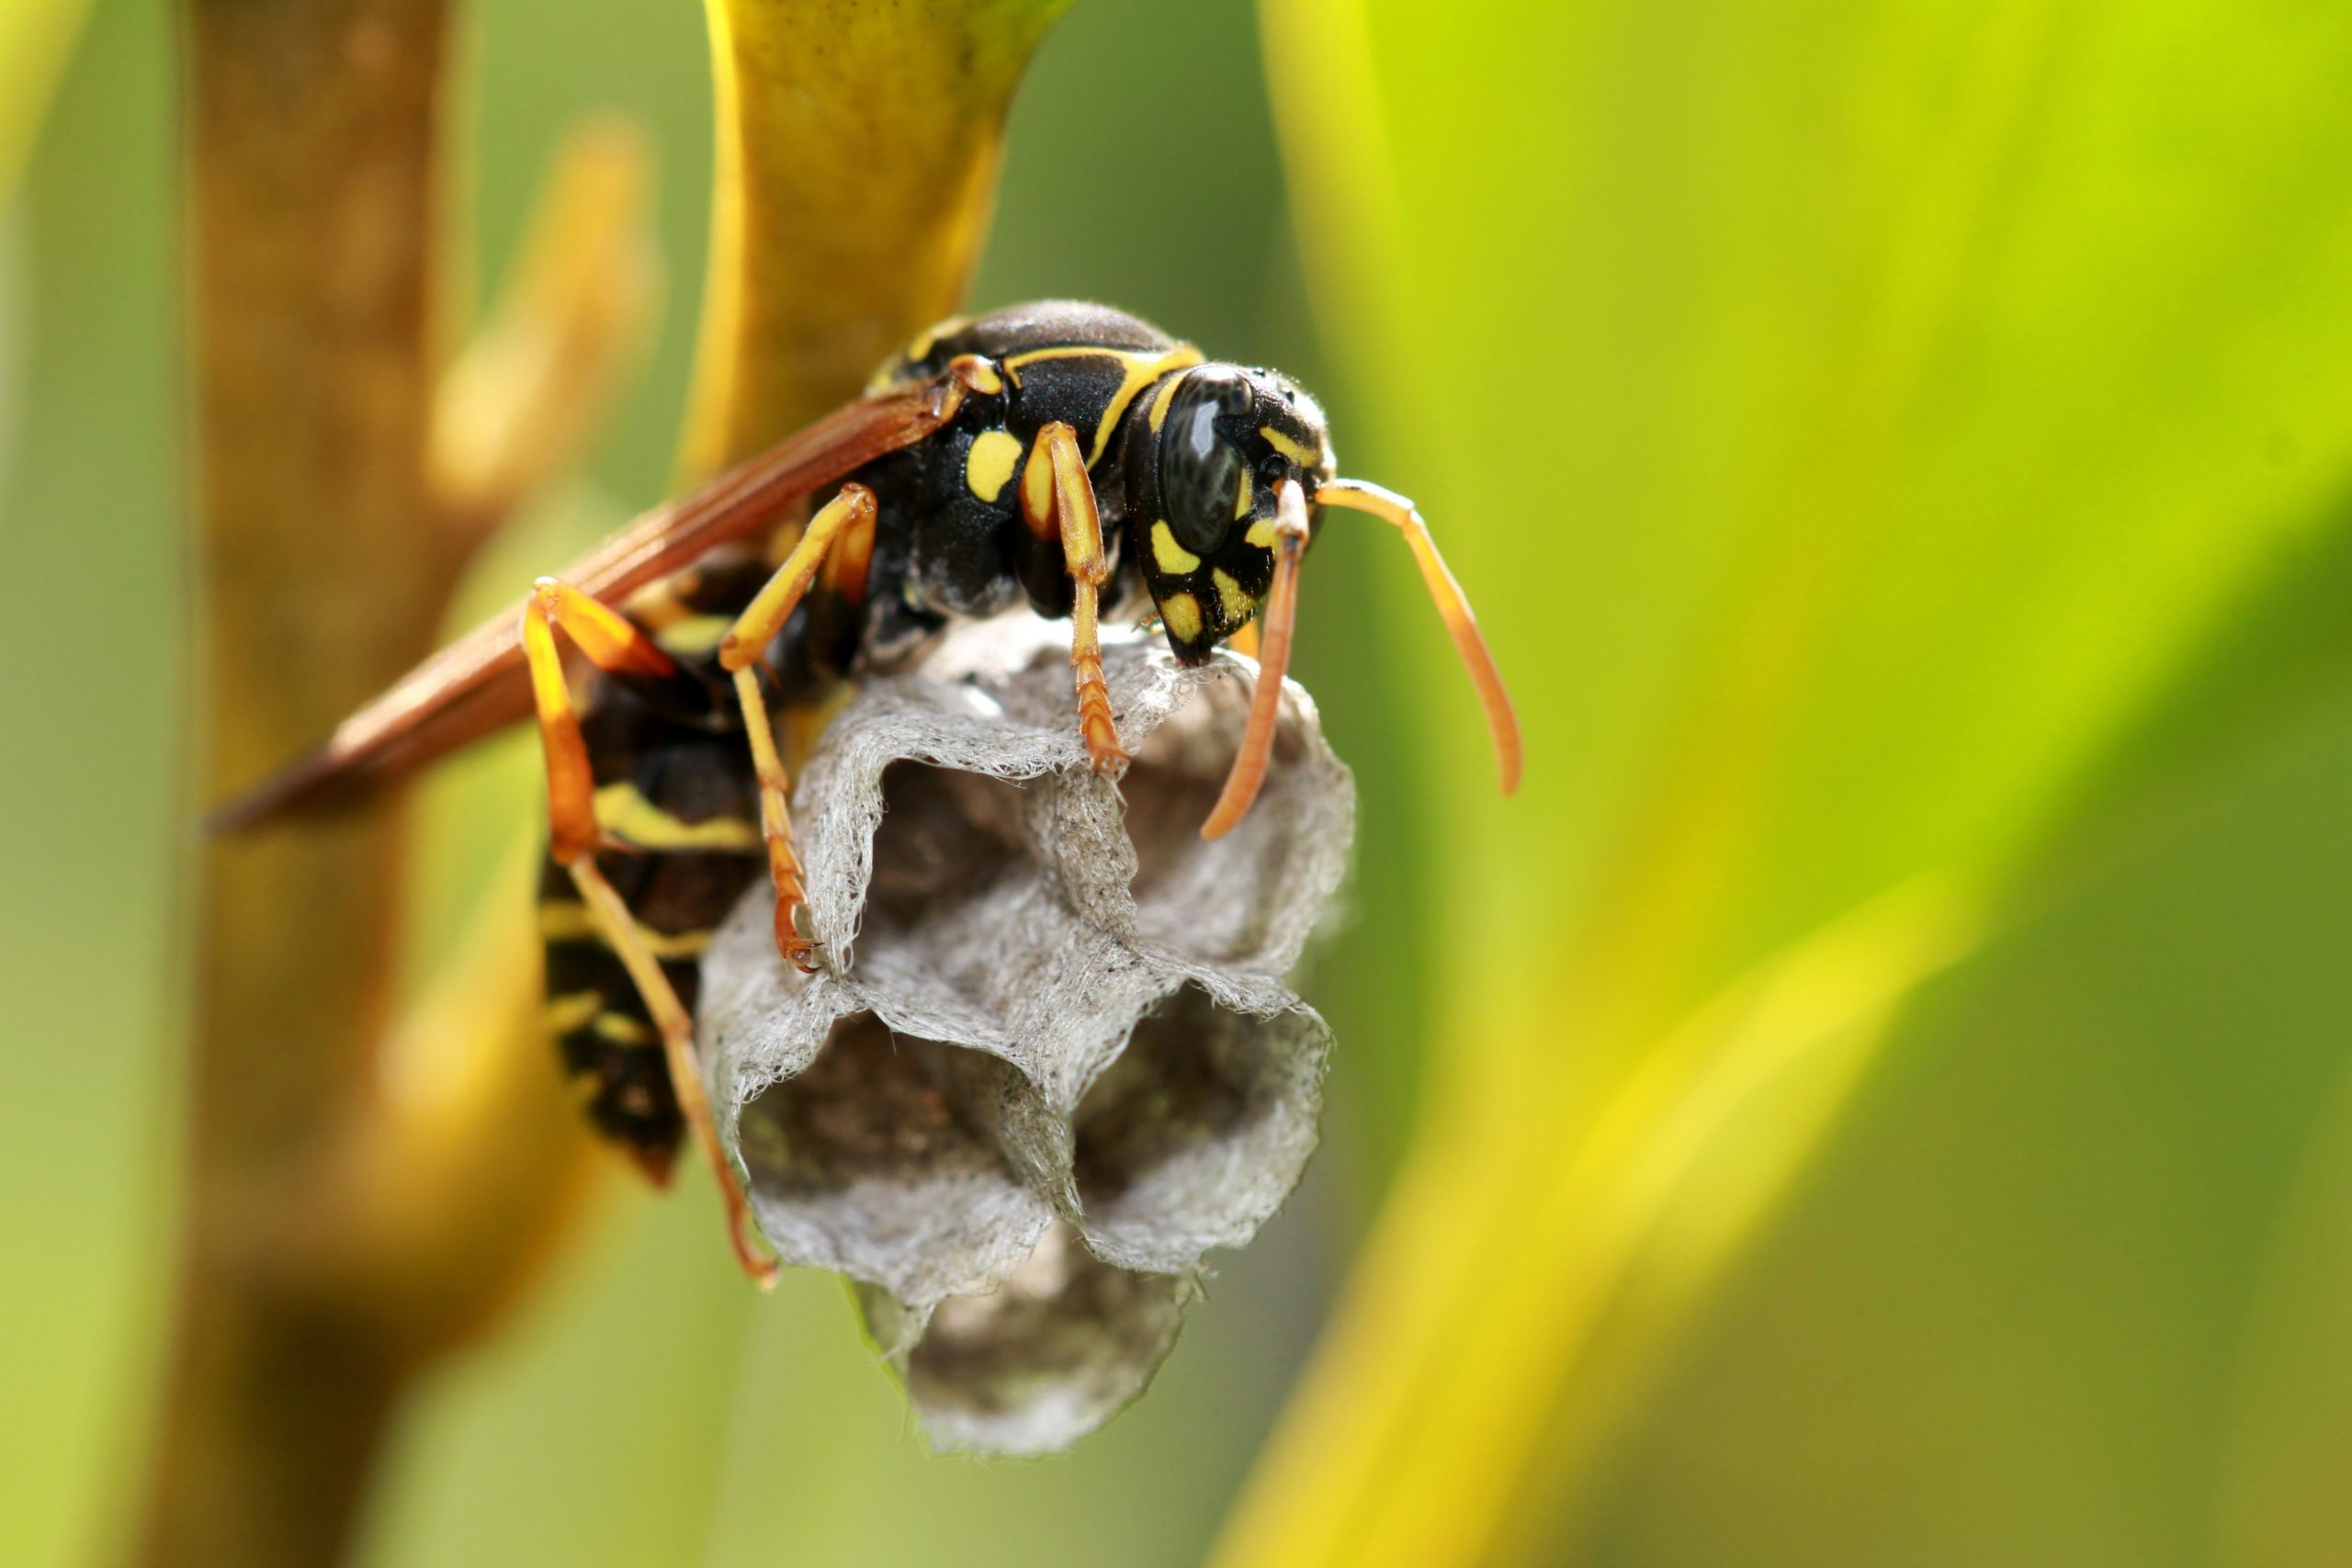 Image of paper wasp queen constructing nest